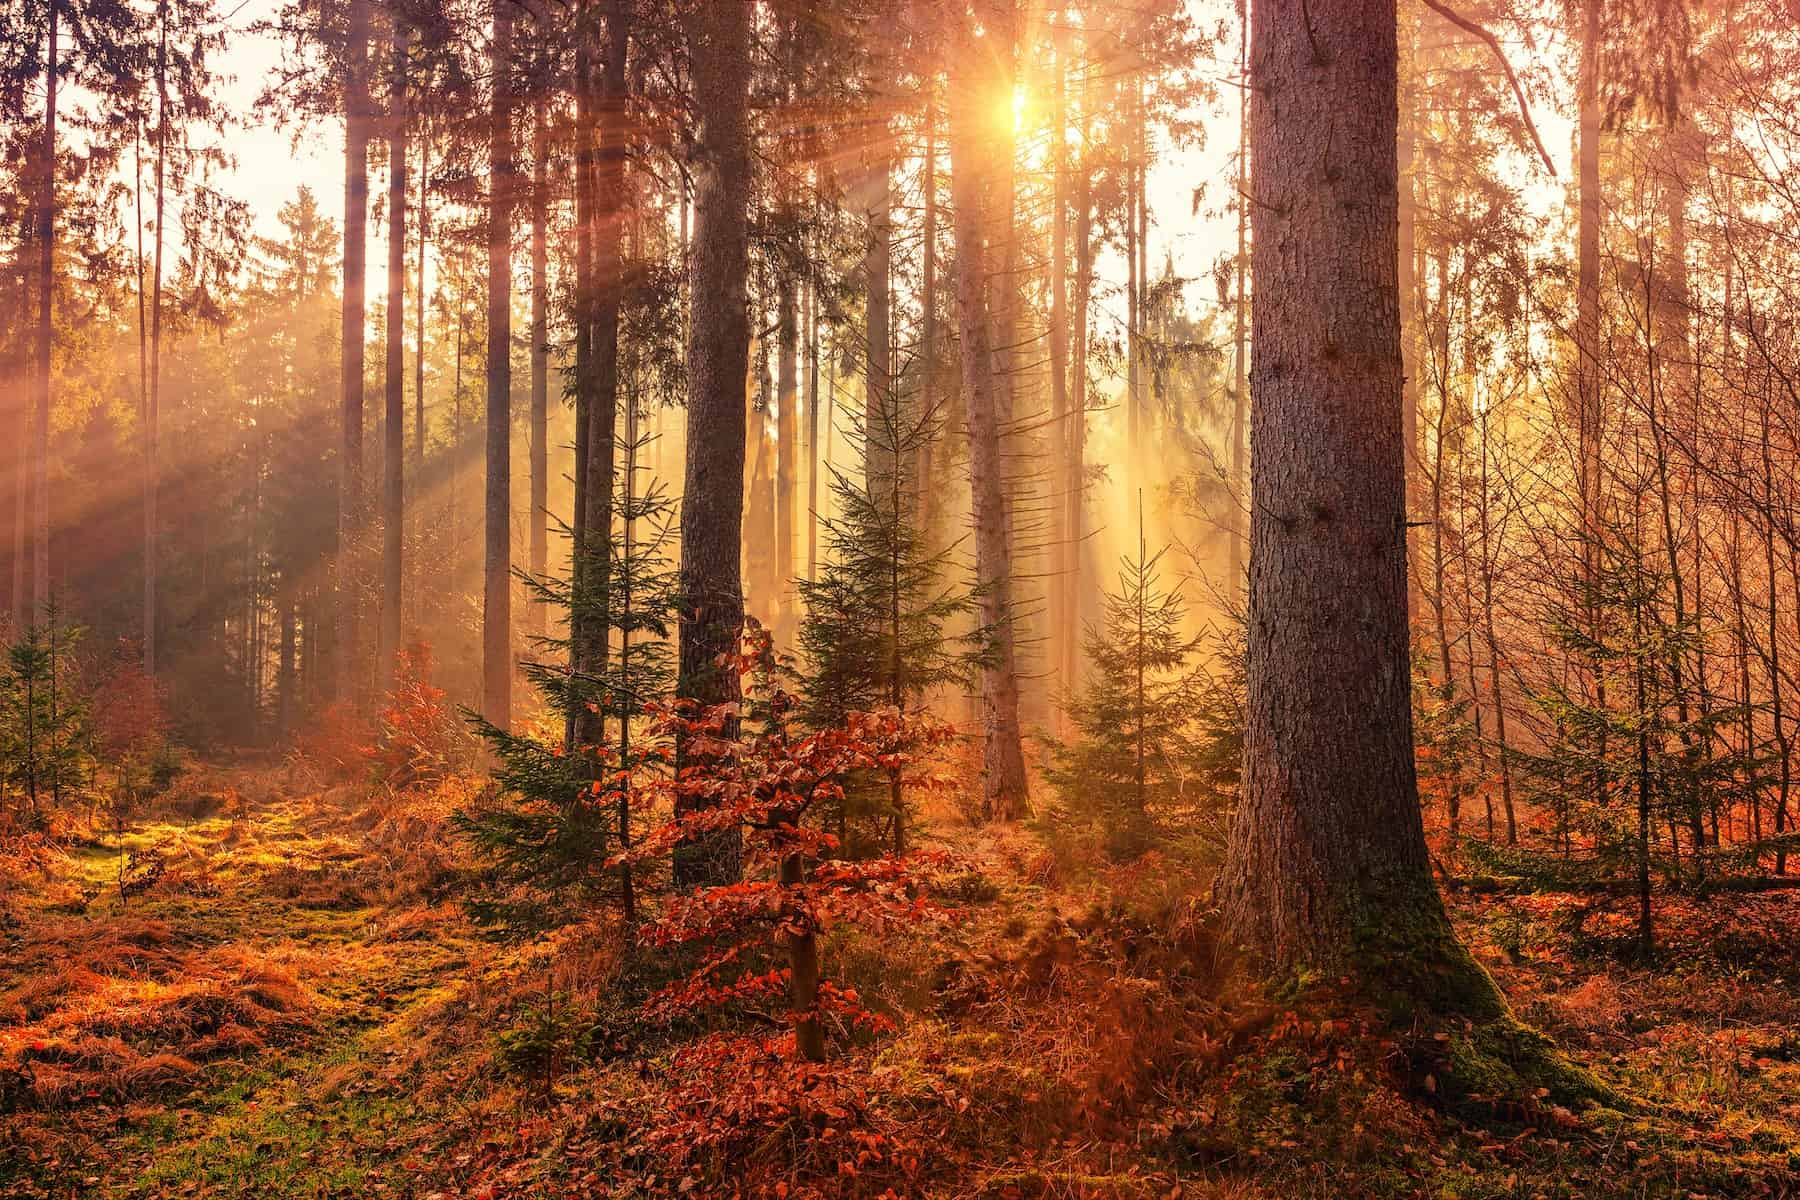 A low sun appears between red-leaved trees in a forest, flooding the scene with golden light. Red leaves cover the ground, and a few small evergreens stand in the foreground.